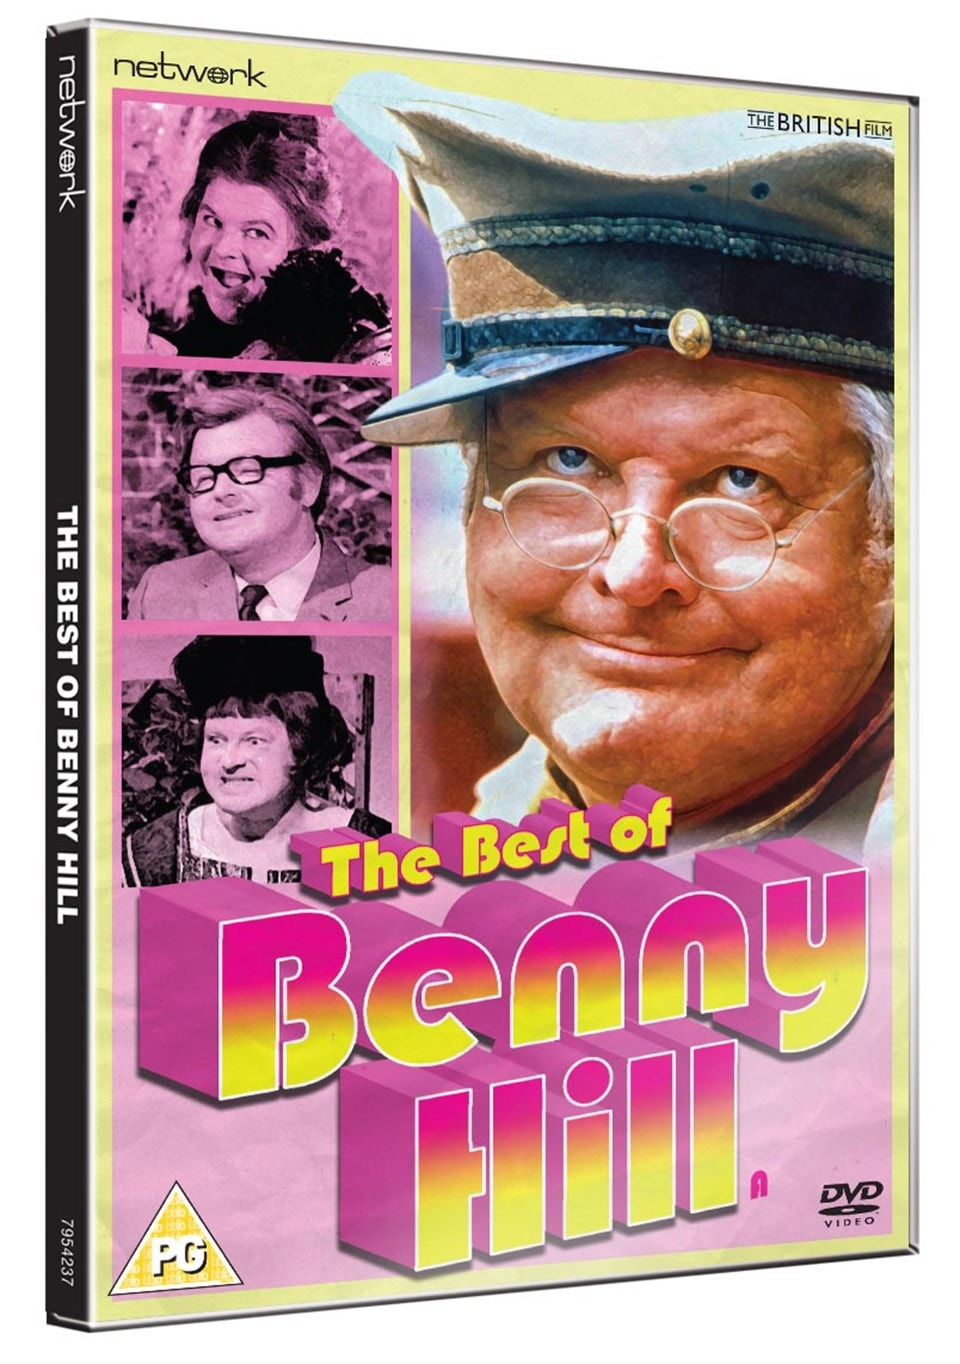 Benny Hill: The Best of Benny Hill - 2